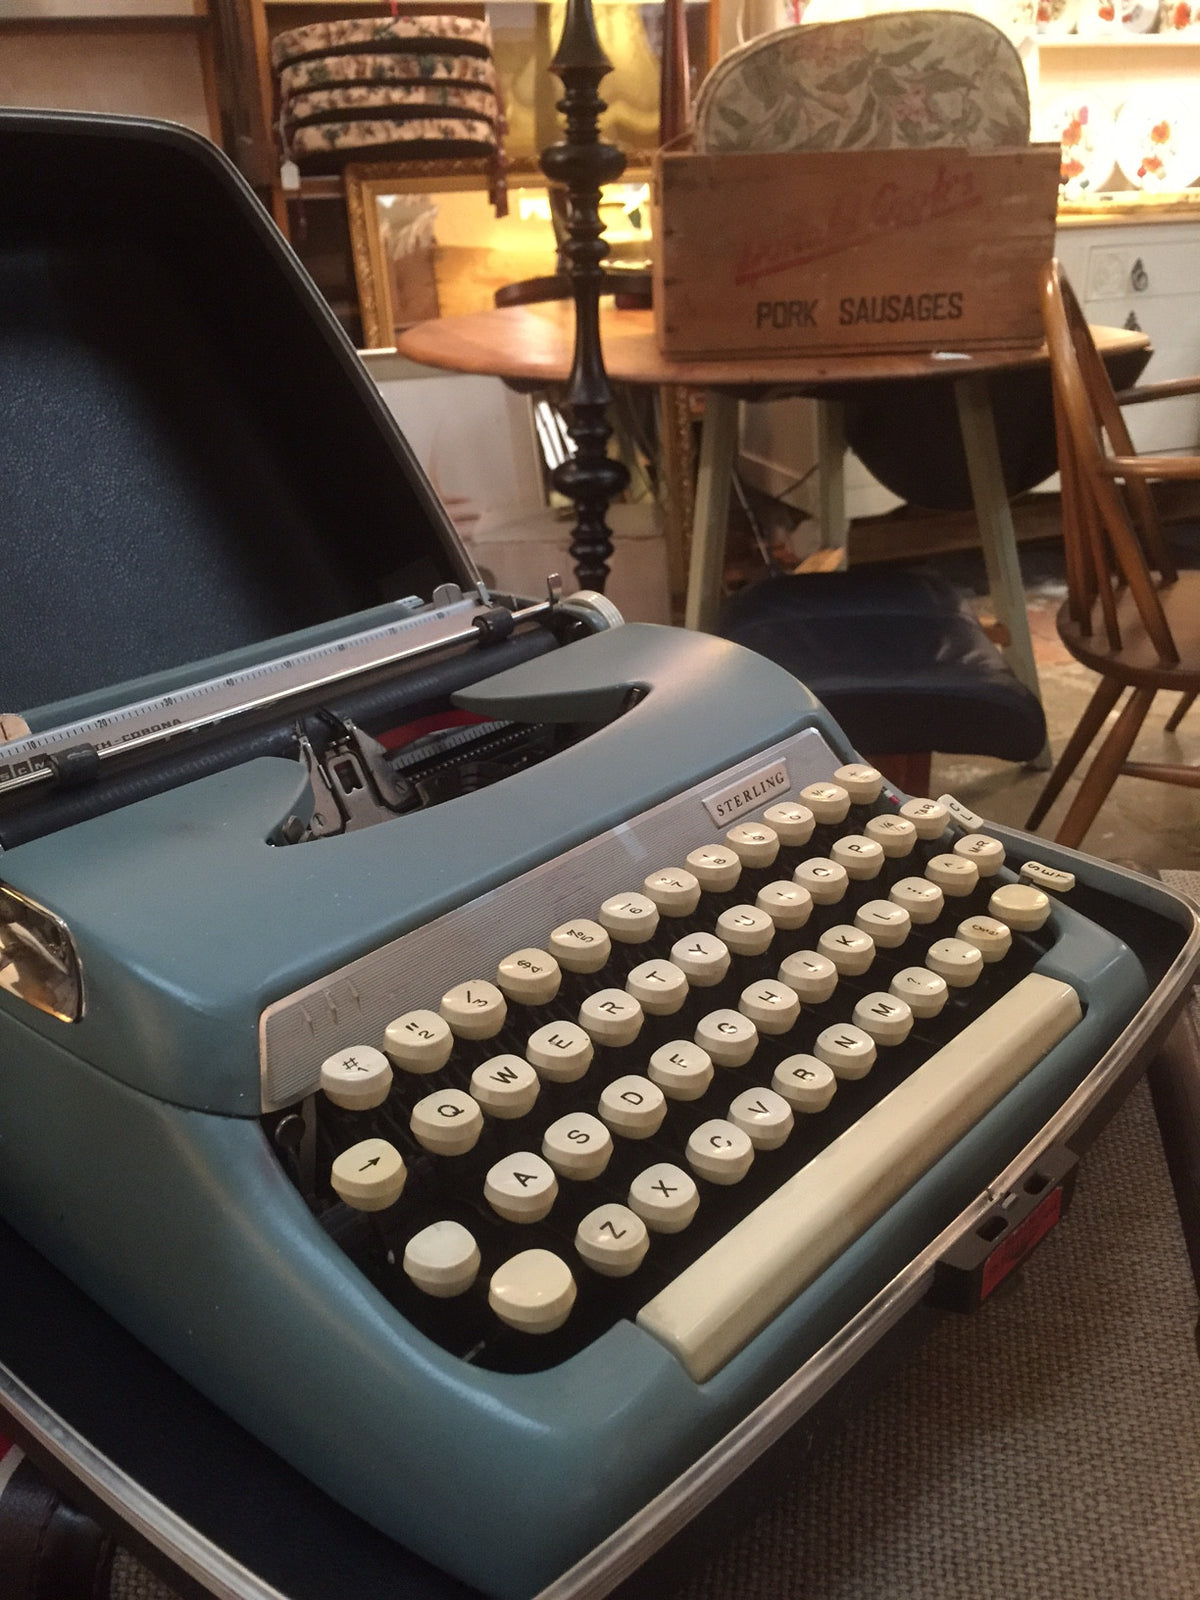 Portable Typewriter Smith-Corona Sterling